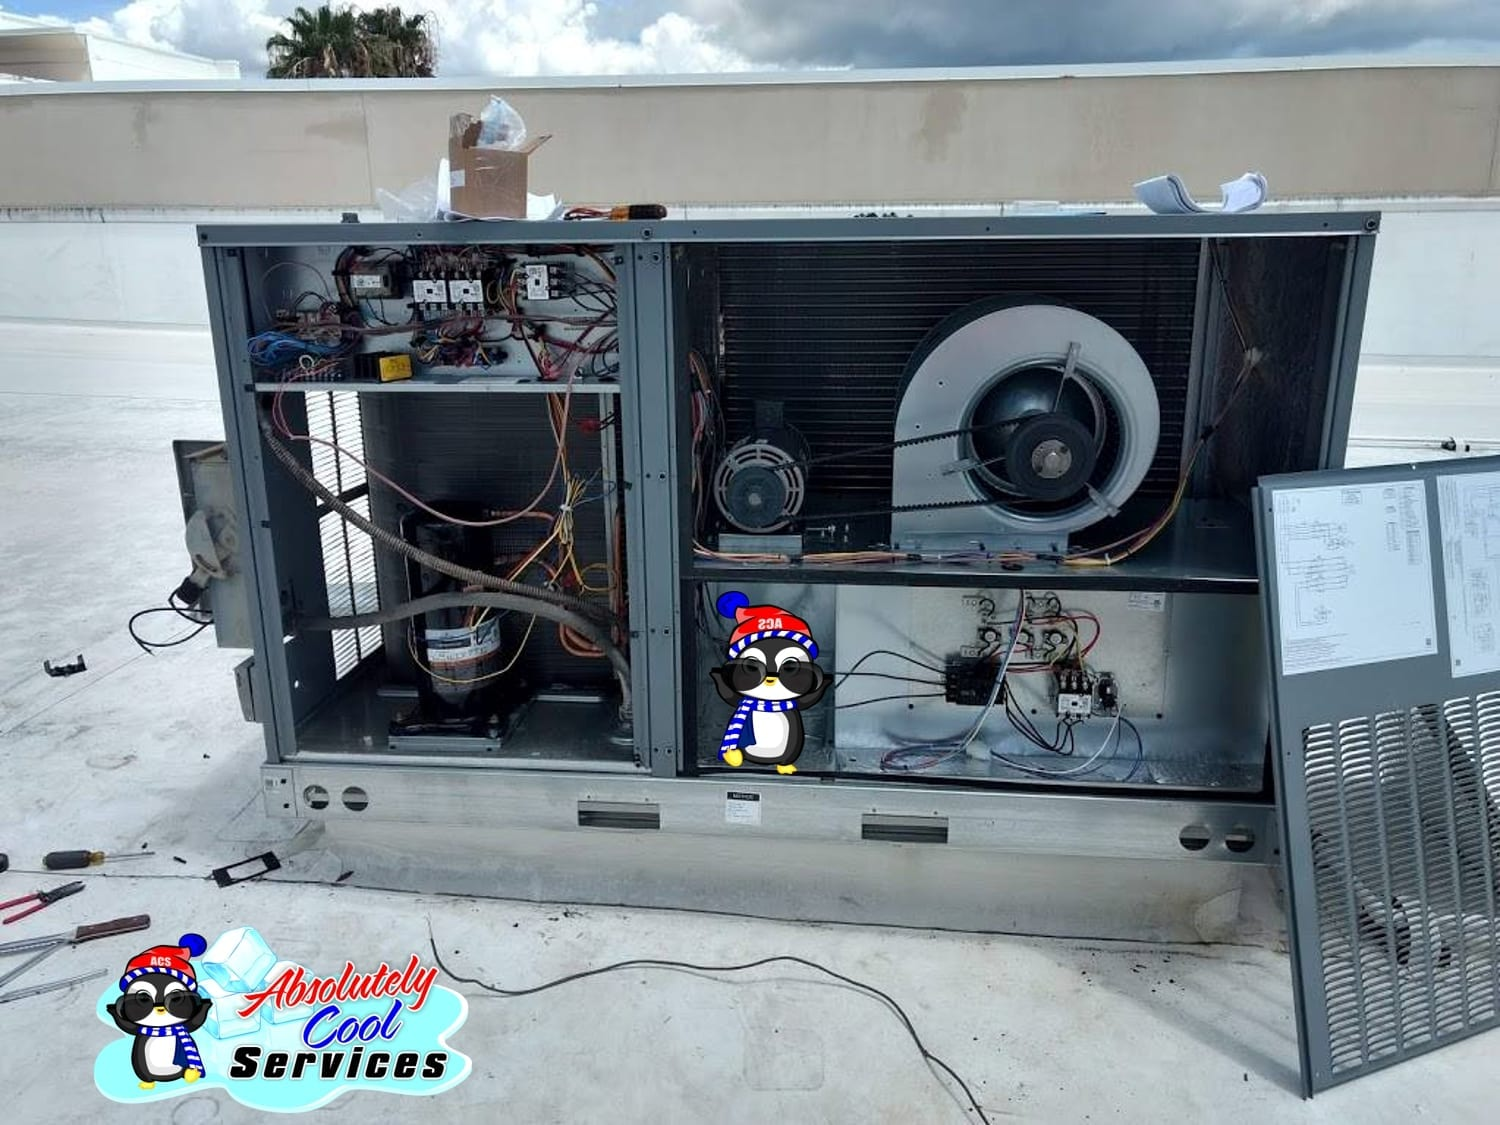 Roof Air Conditioning | HVAC Duct Work Service near Lake Worth